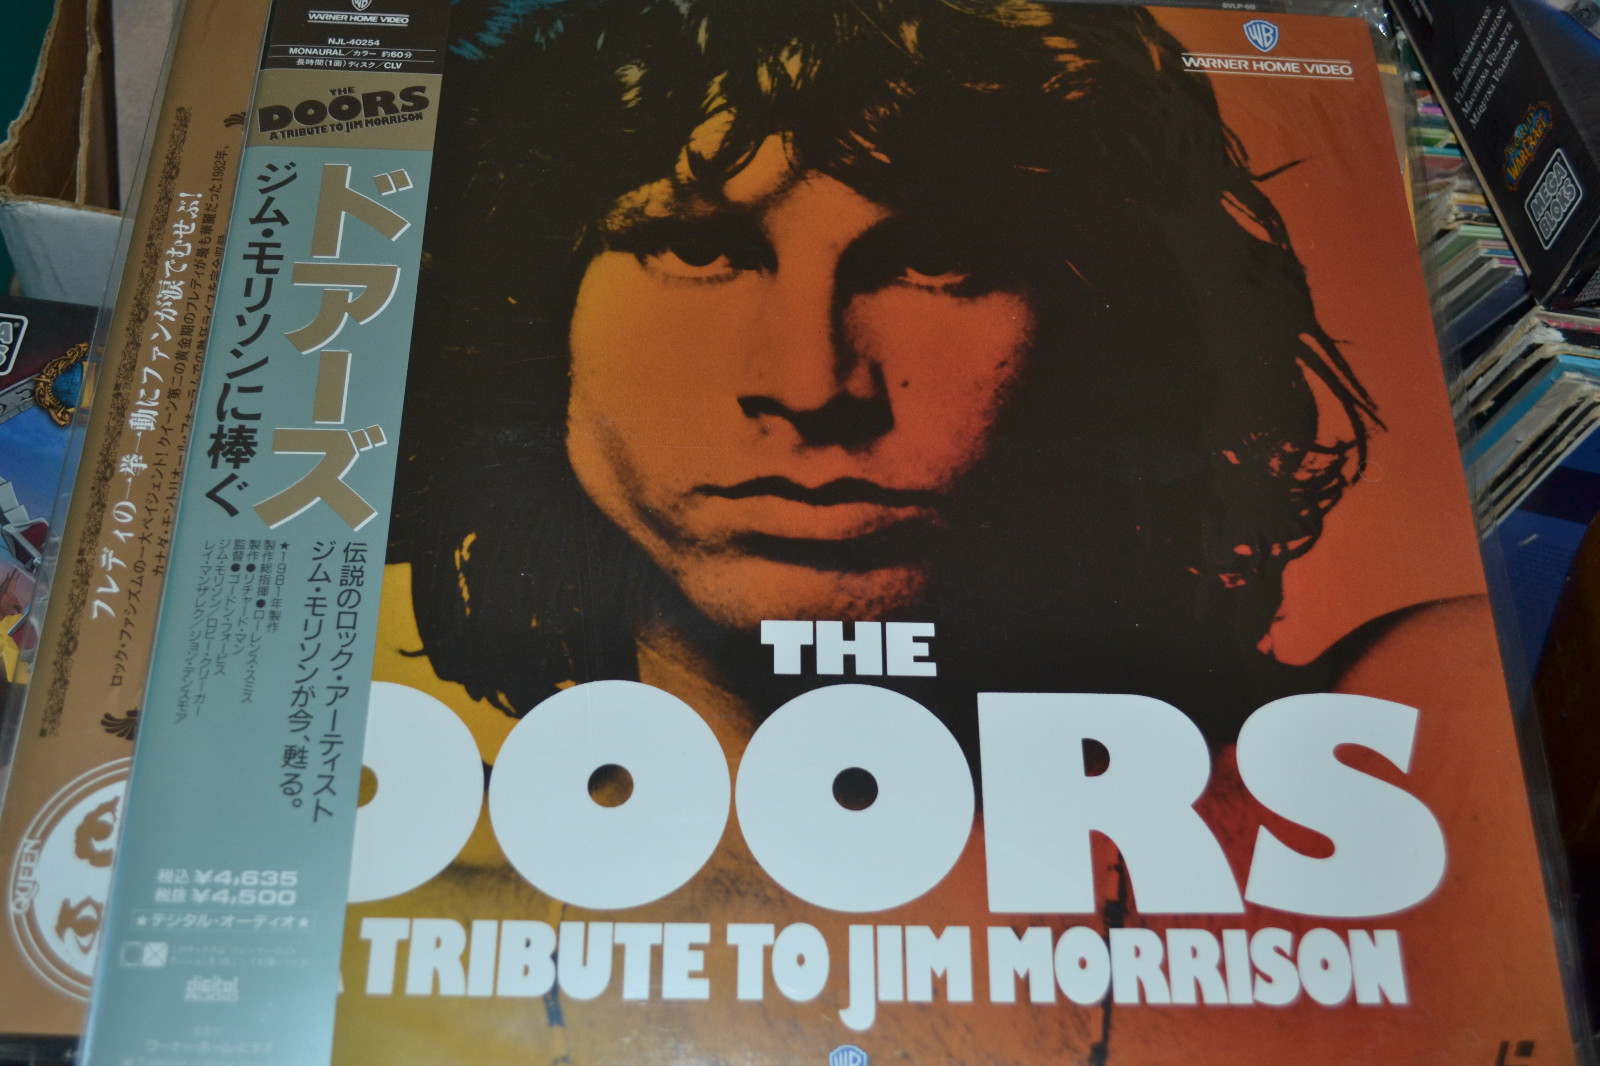 Primary image for The Doors: Tribute to Jim Morrison (1981) [NTSC] [NJL-40254] Laserdisc